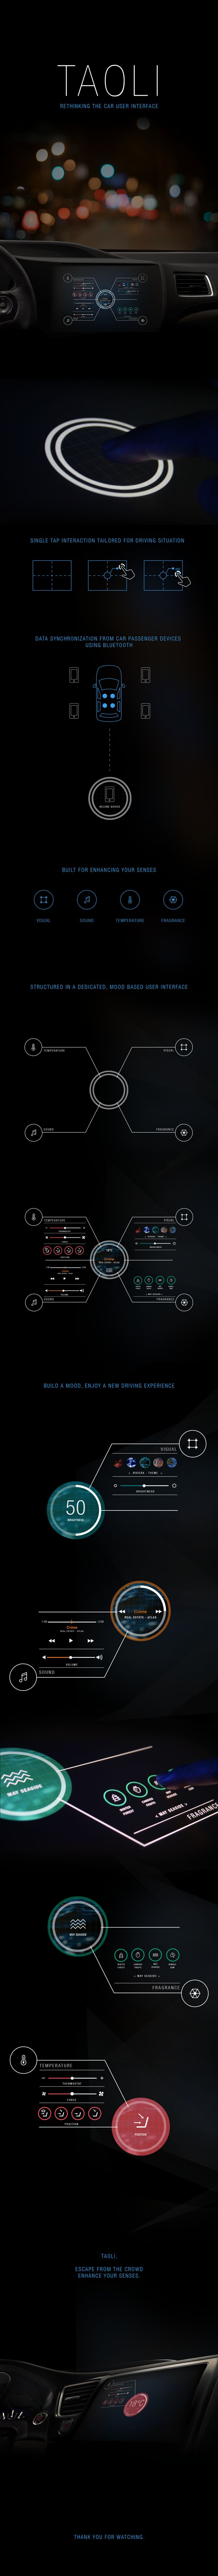 http://www.behance.net/gallery/TAOLI-A-car-user-interface-concept/15737153